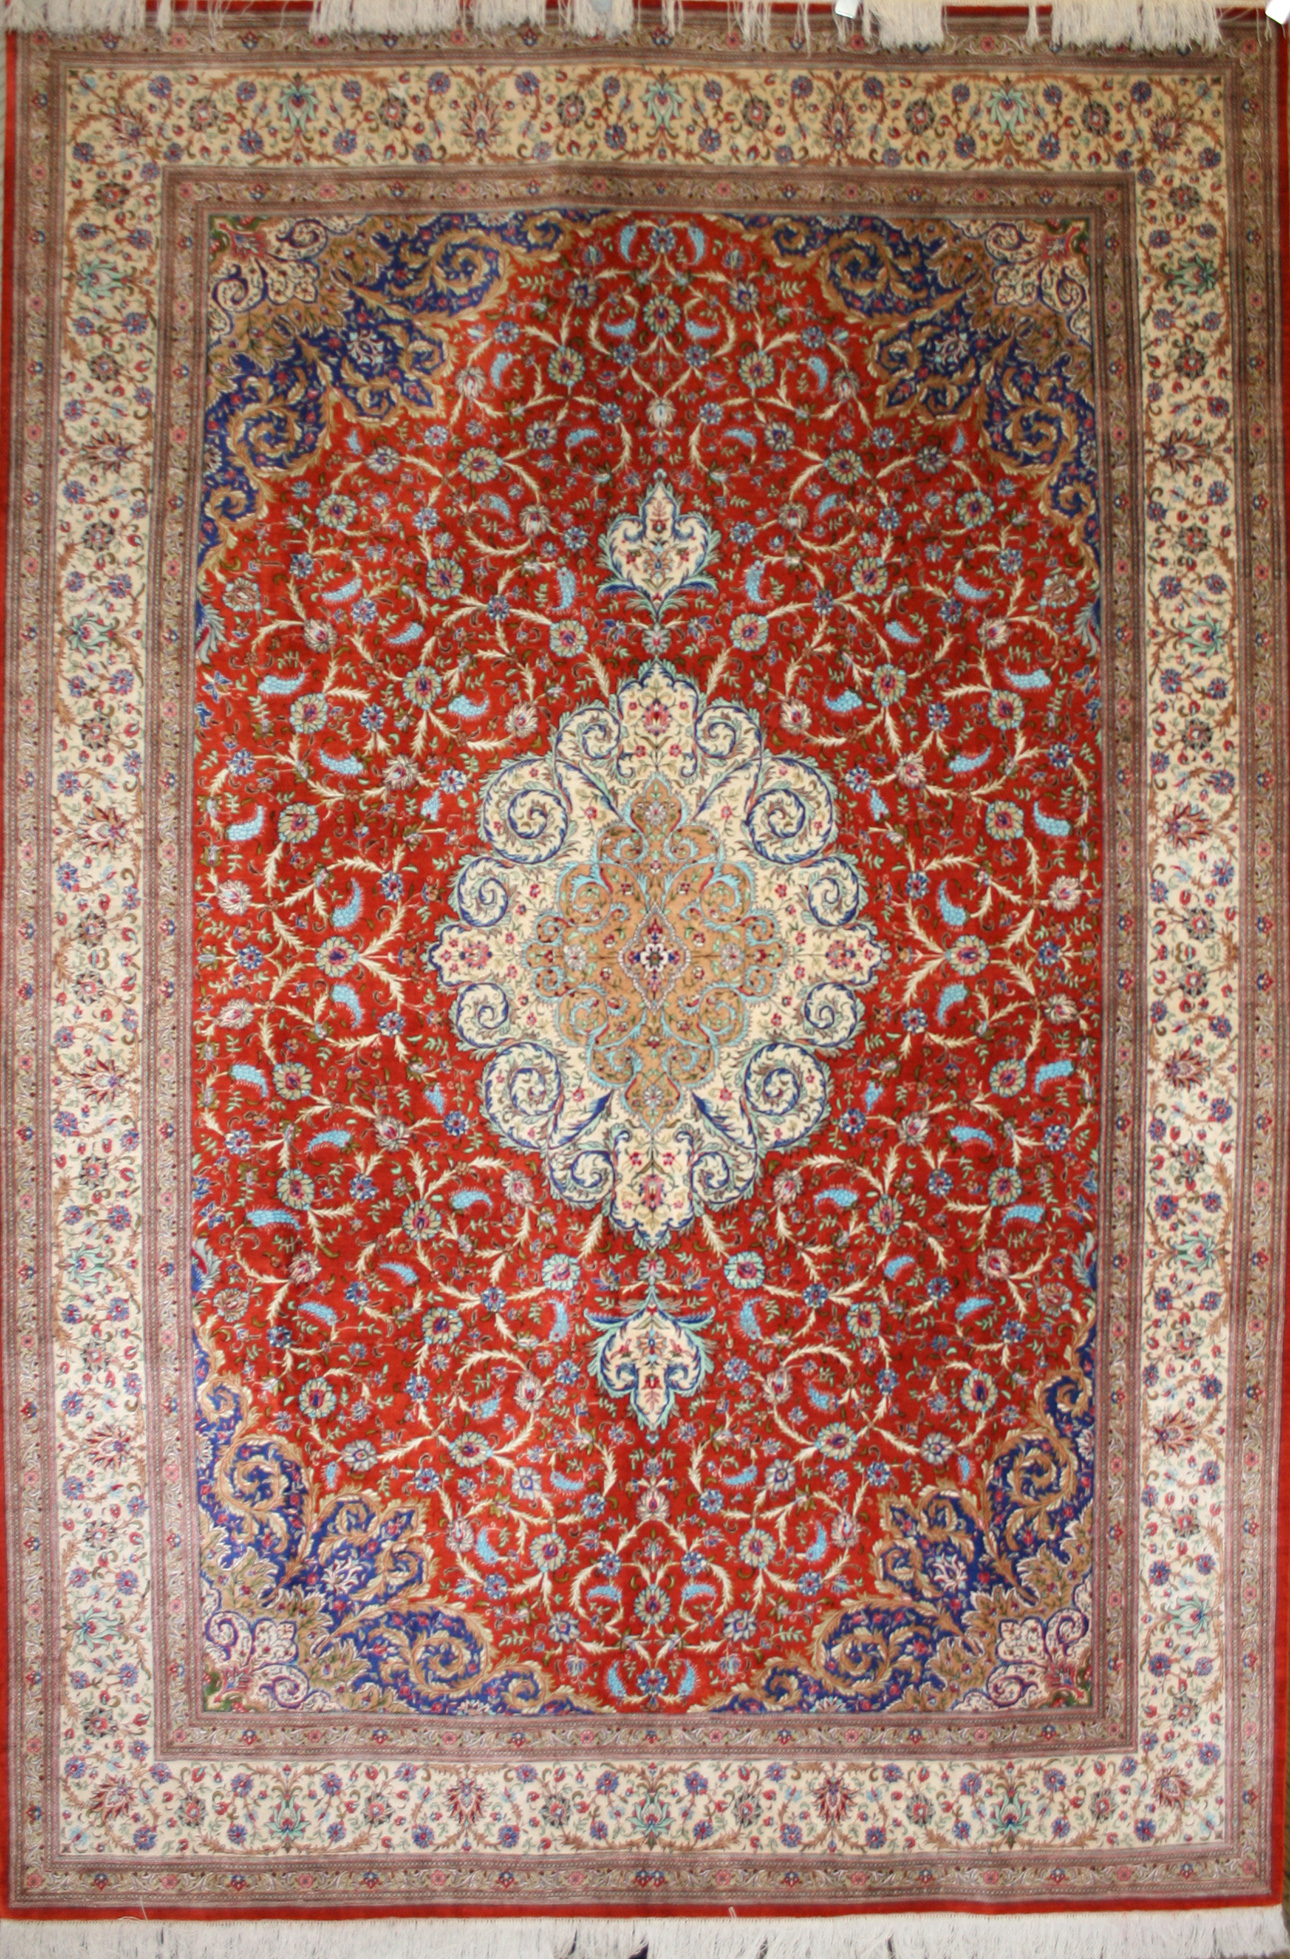 souvenir image images photos rugs alamy middle in photo rug jordan oriental a east stock shop